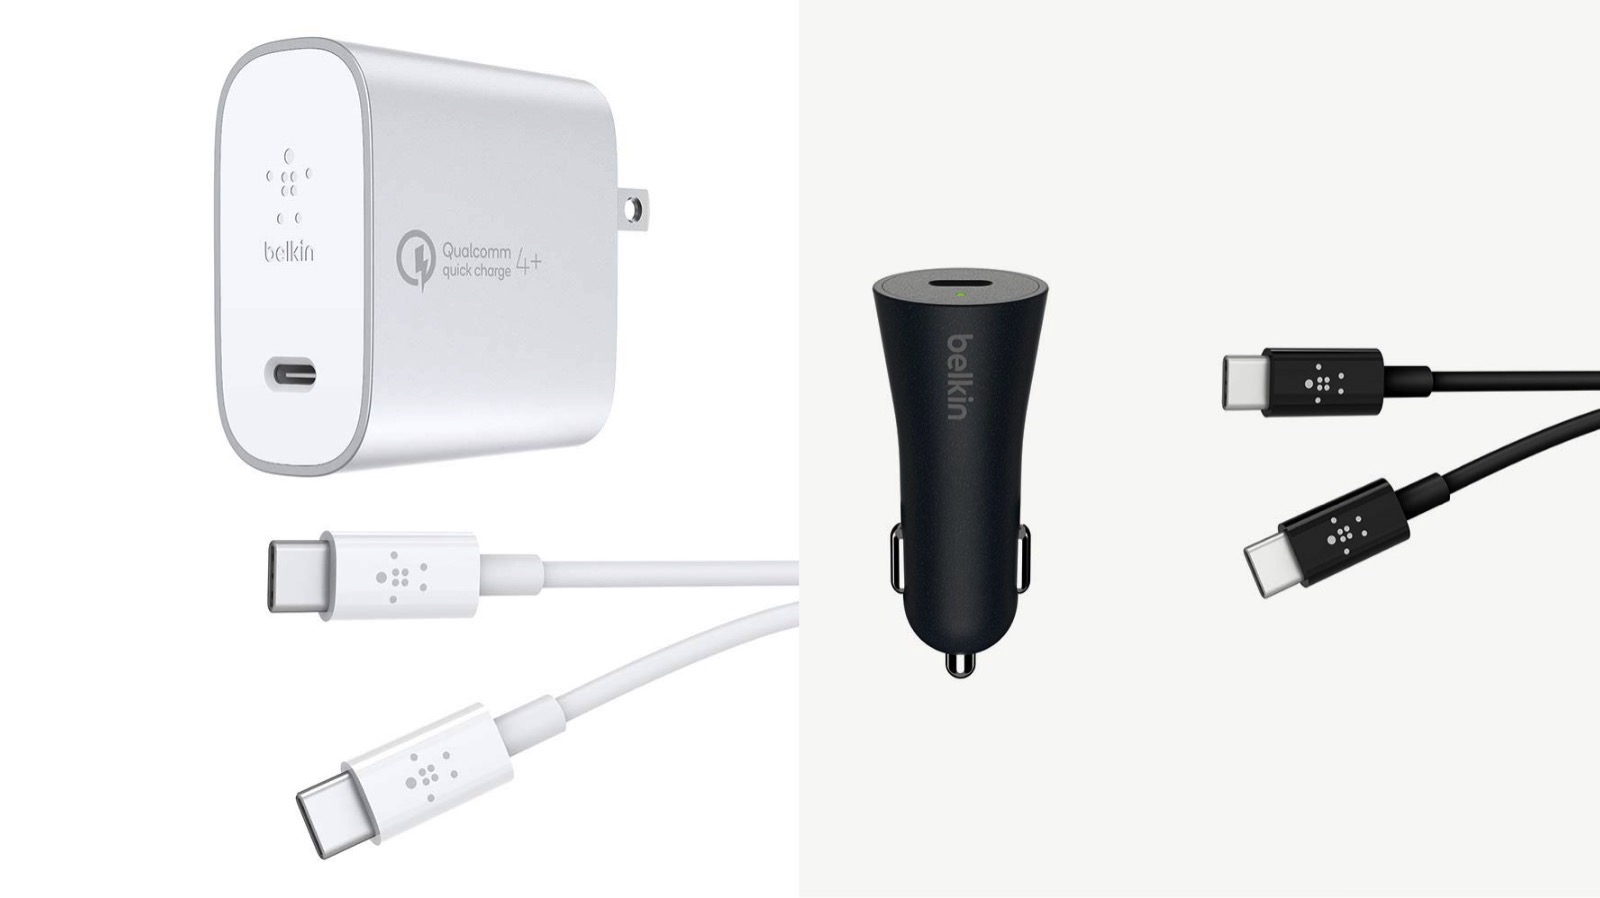 Belkin Quickcharge4 compatible products